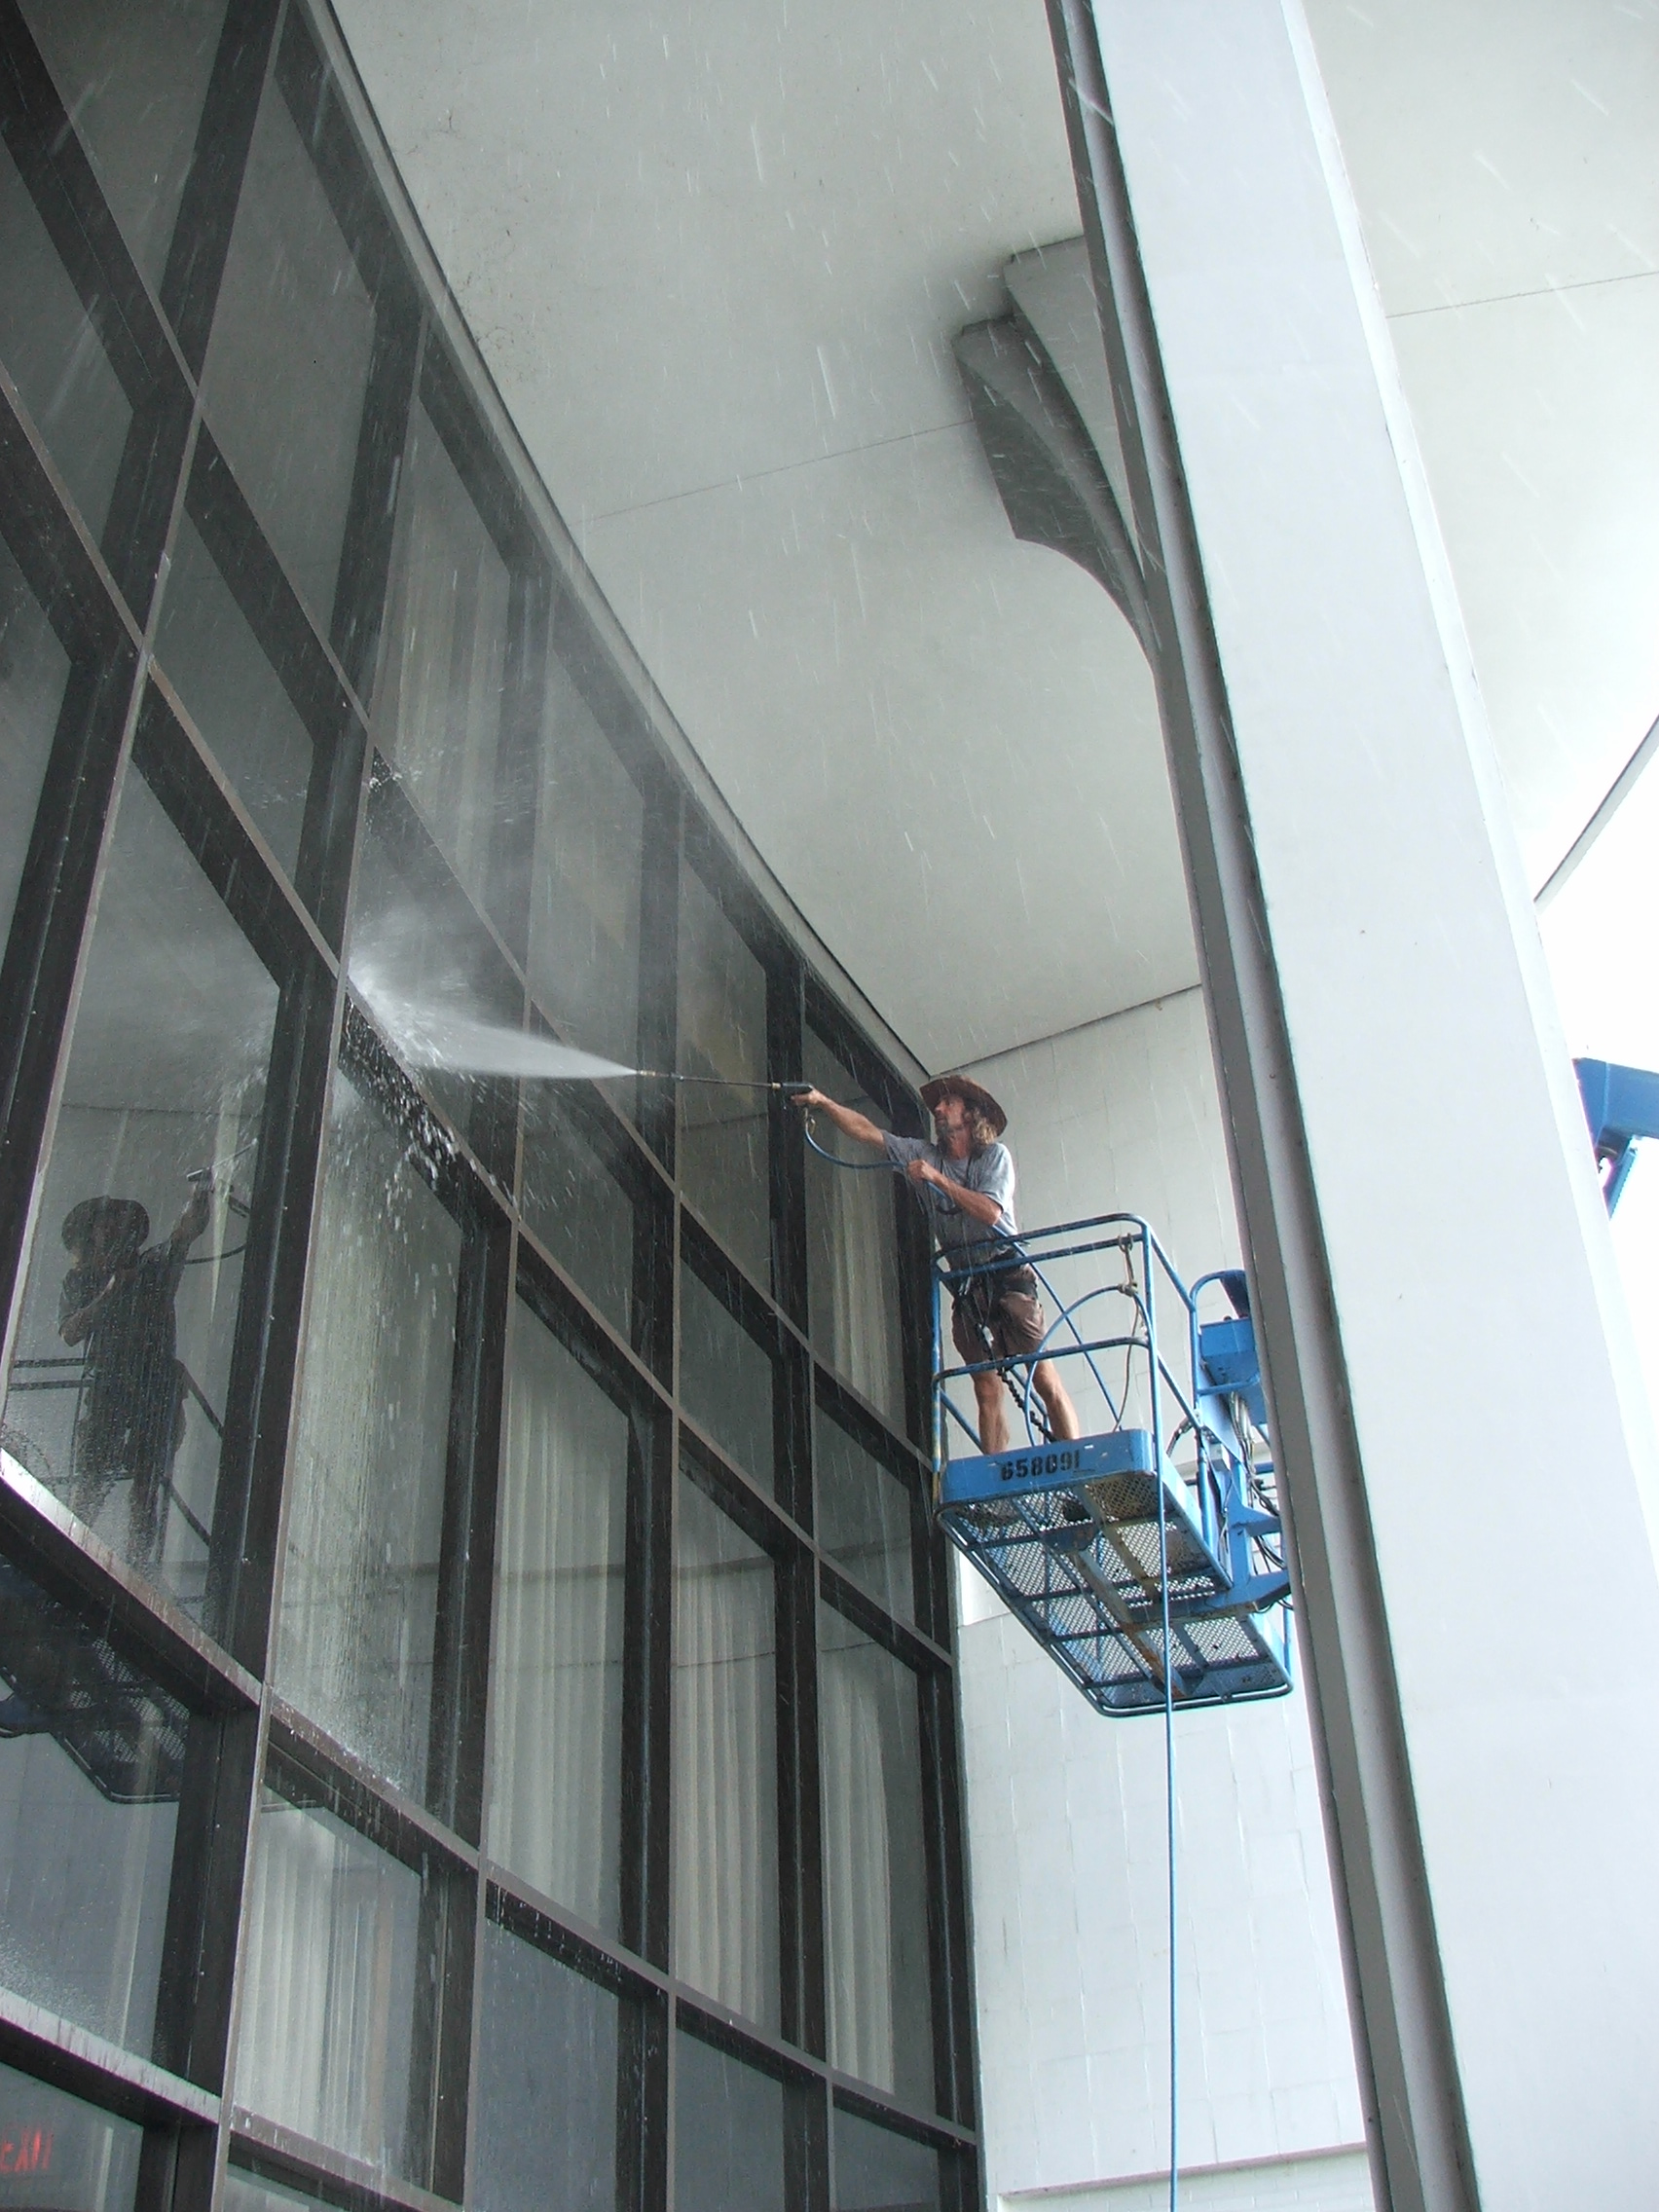 Pressure washing glass front entrance to remove dirt, cob webs and debris